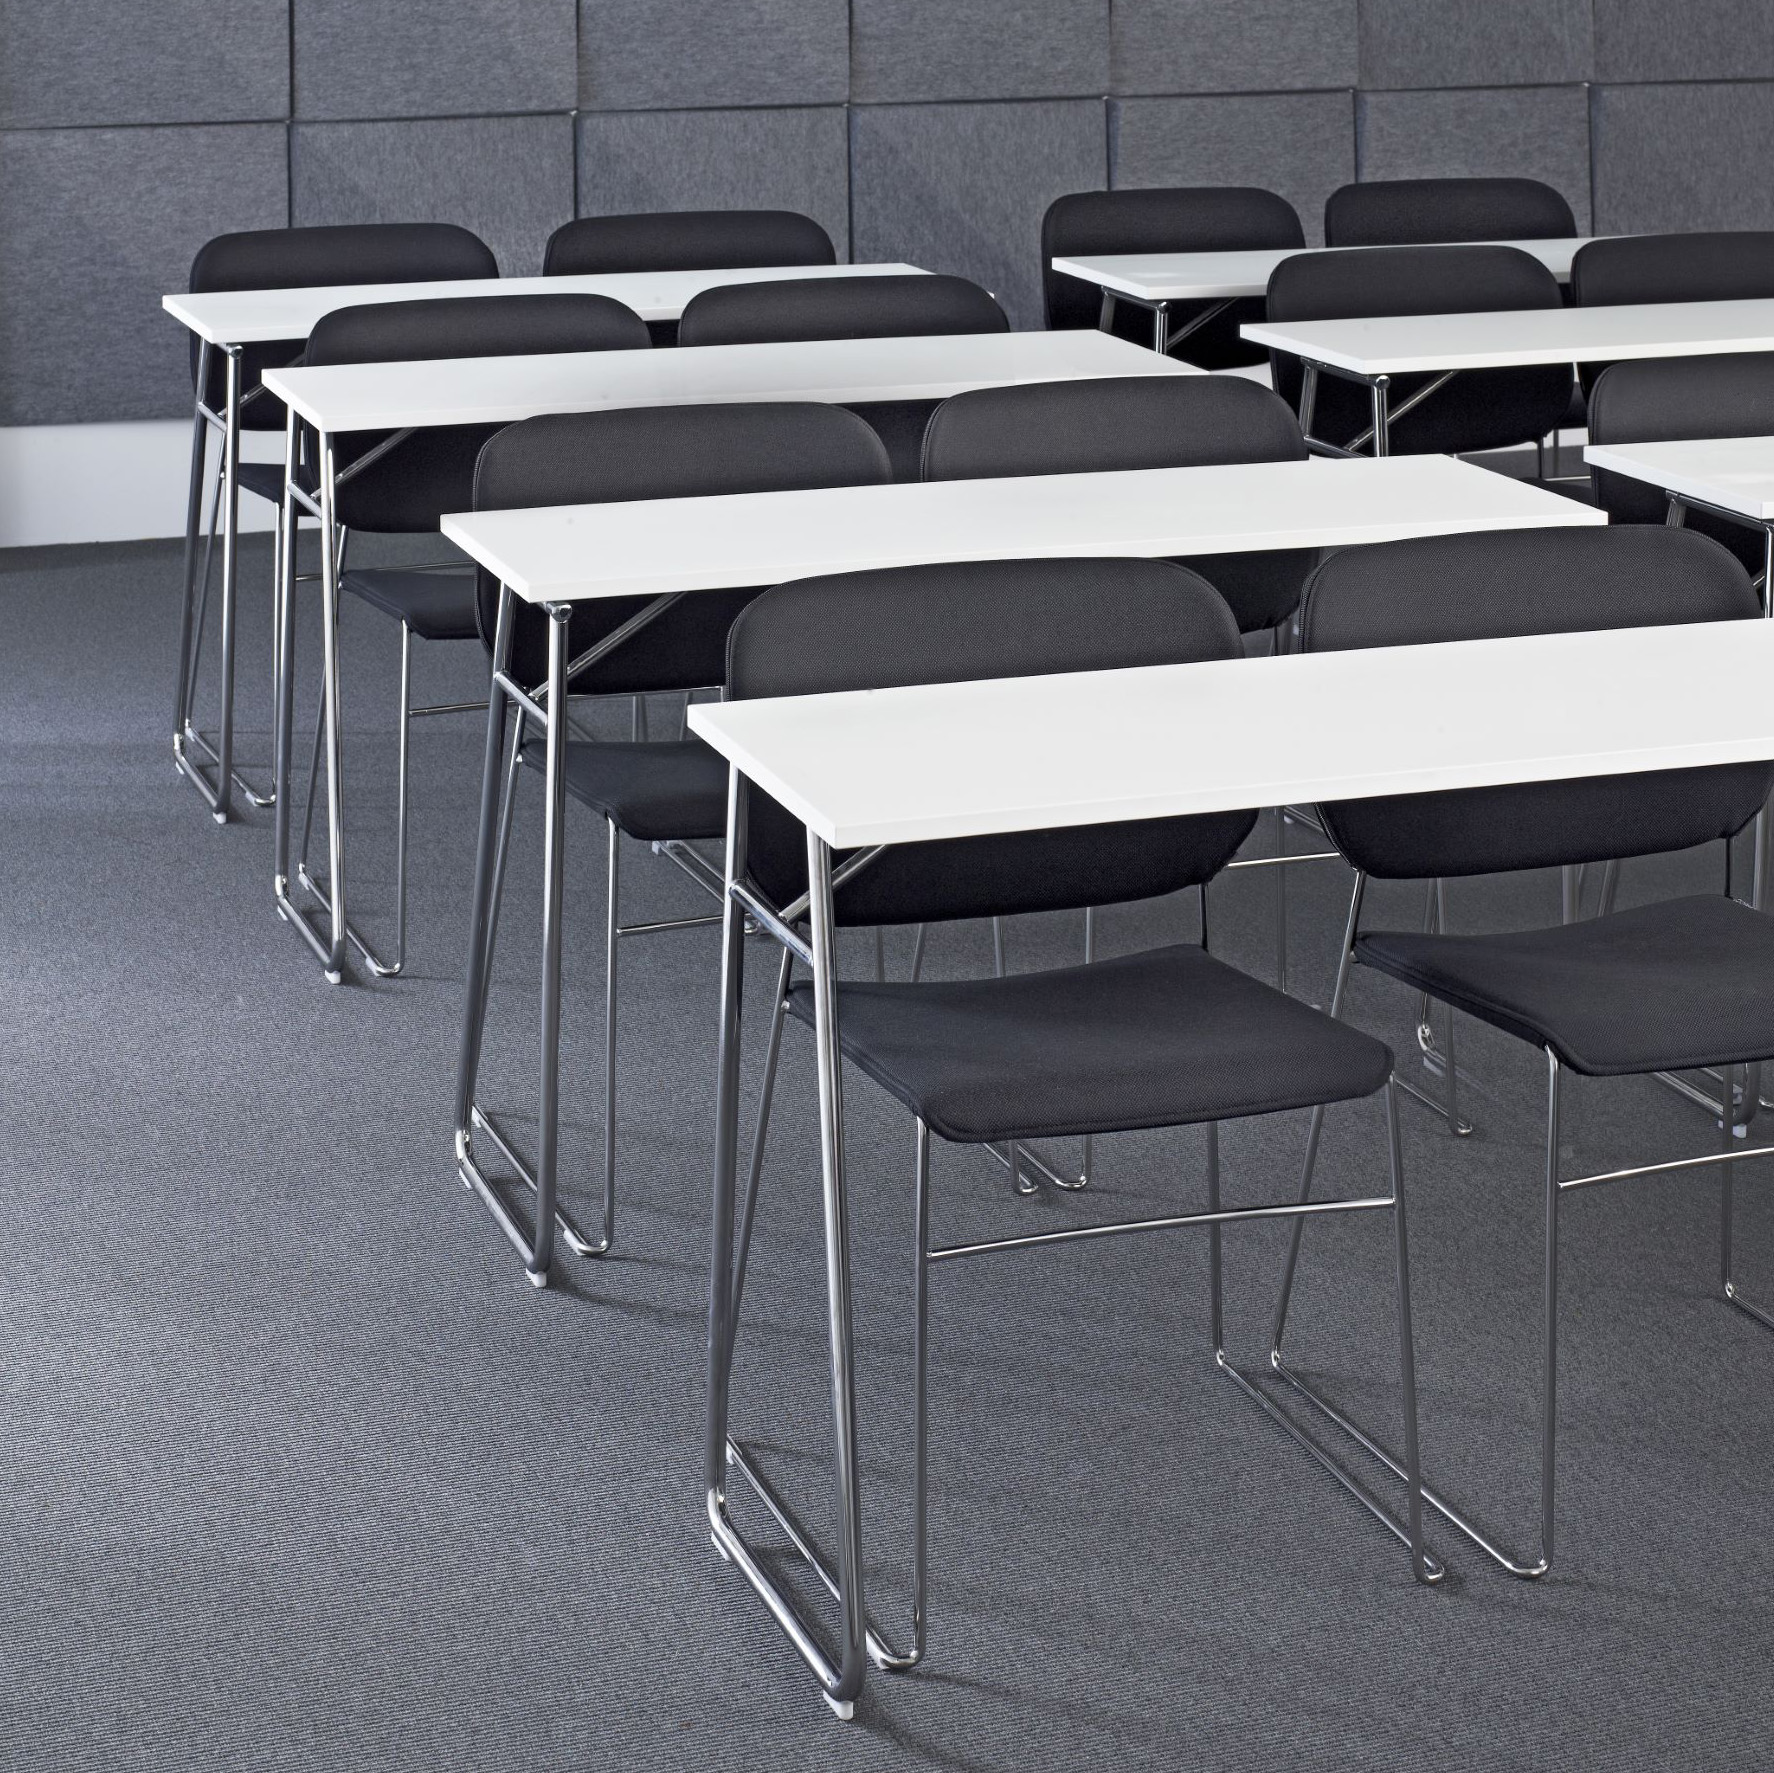 Costco Folding Tables   48 Round Folding Table Costco   Costco Round Folding Tables